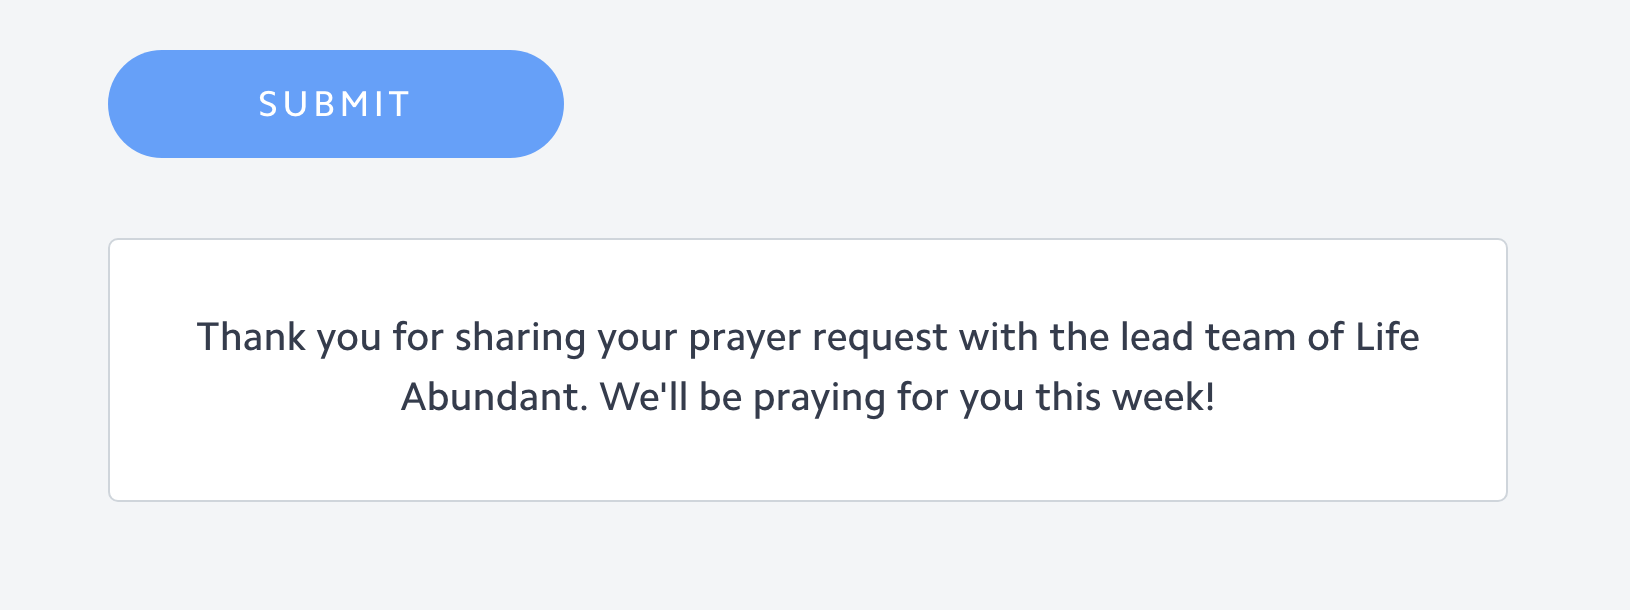 Prayer request confirmation message